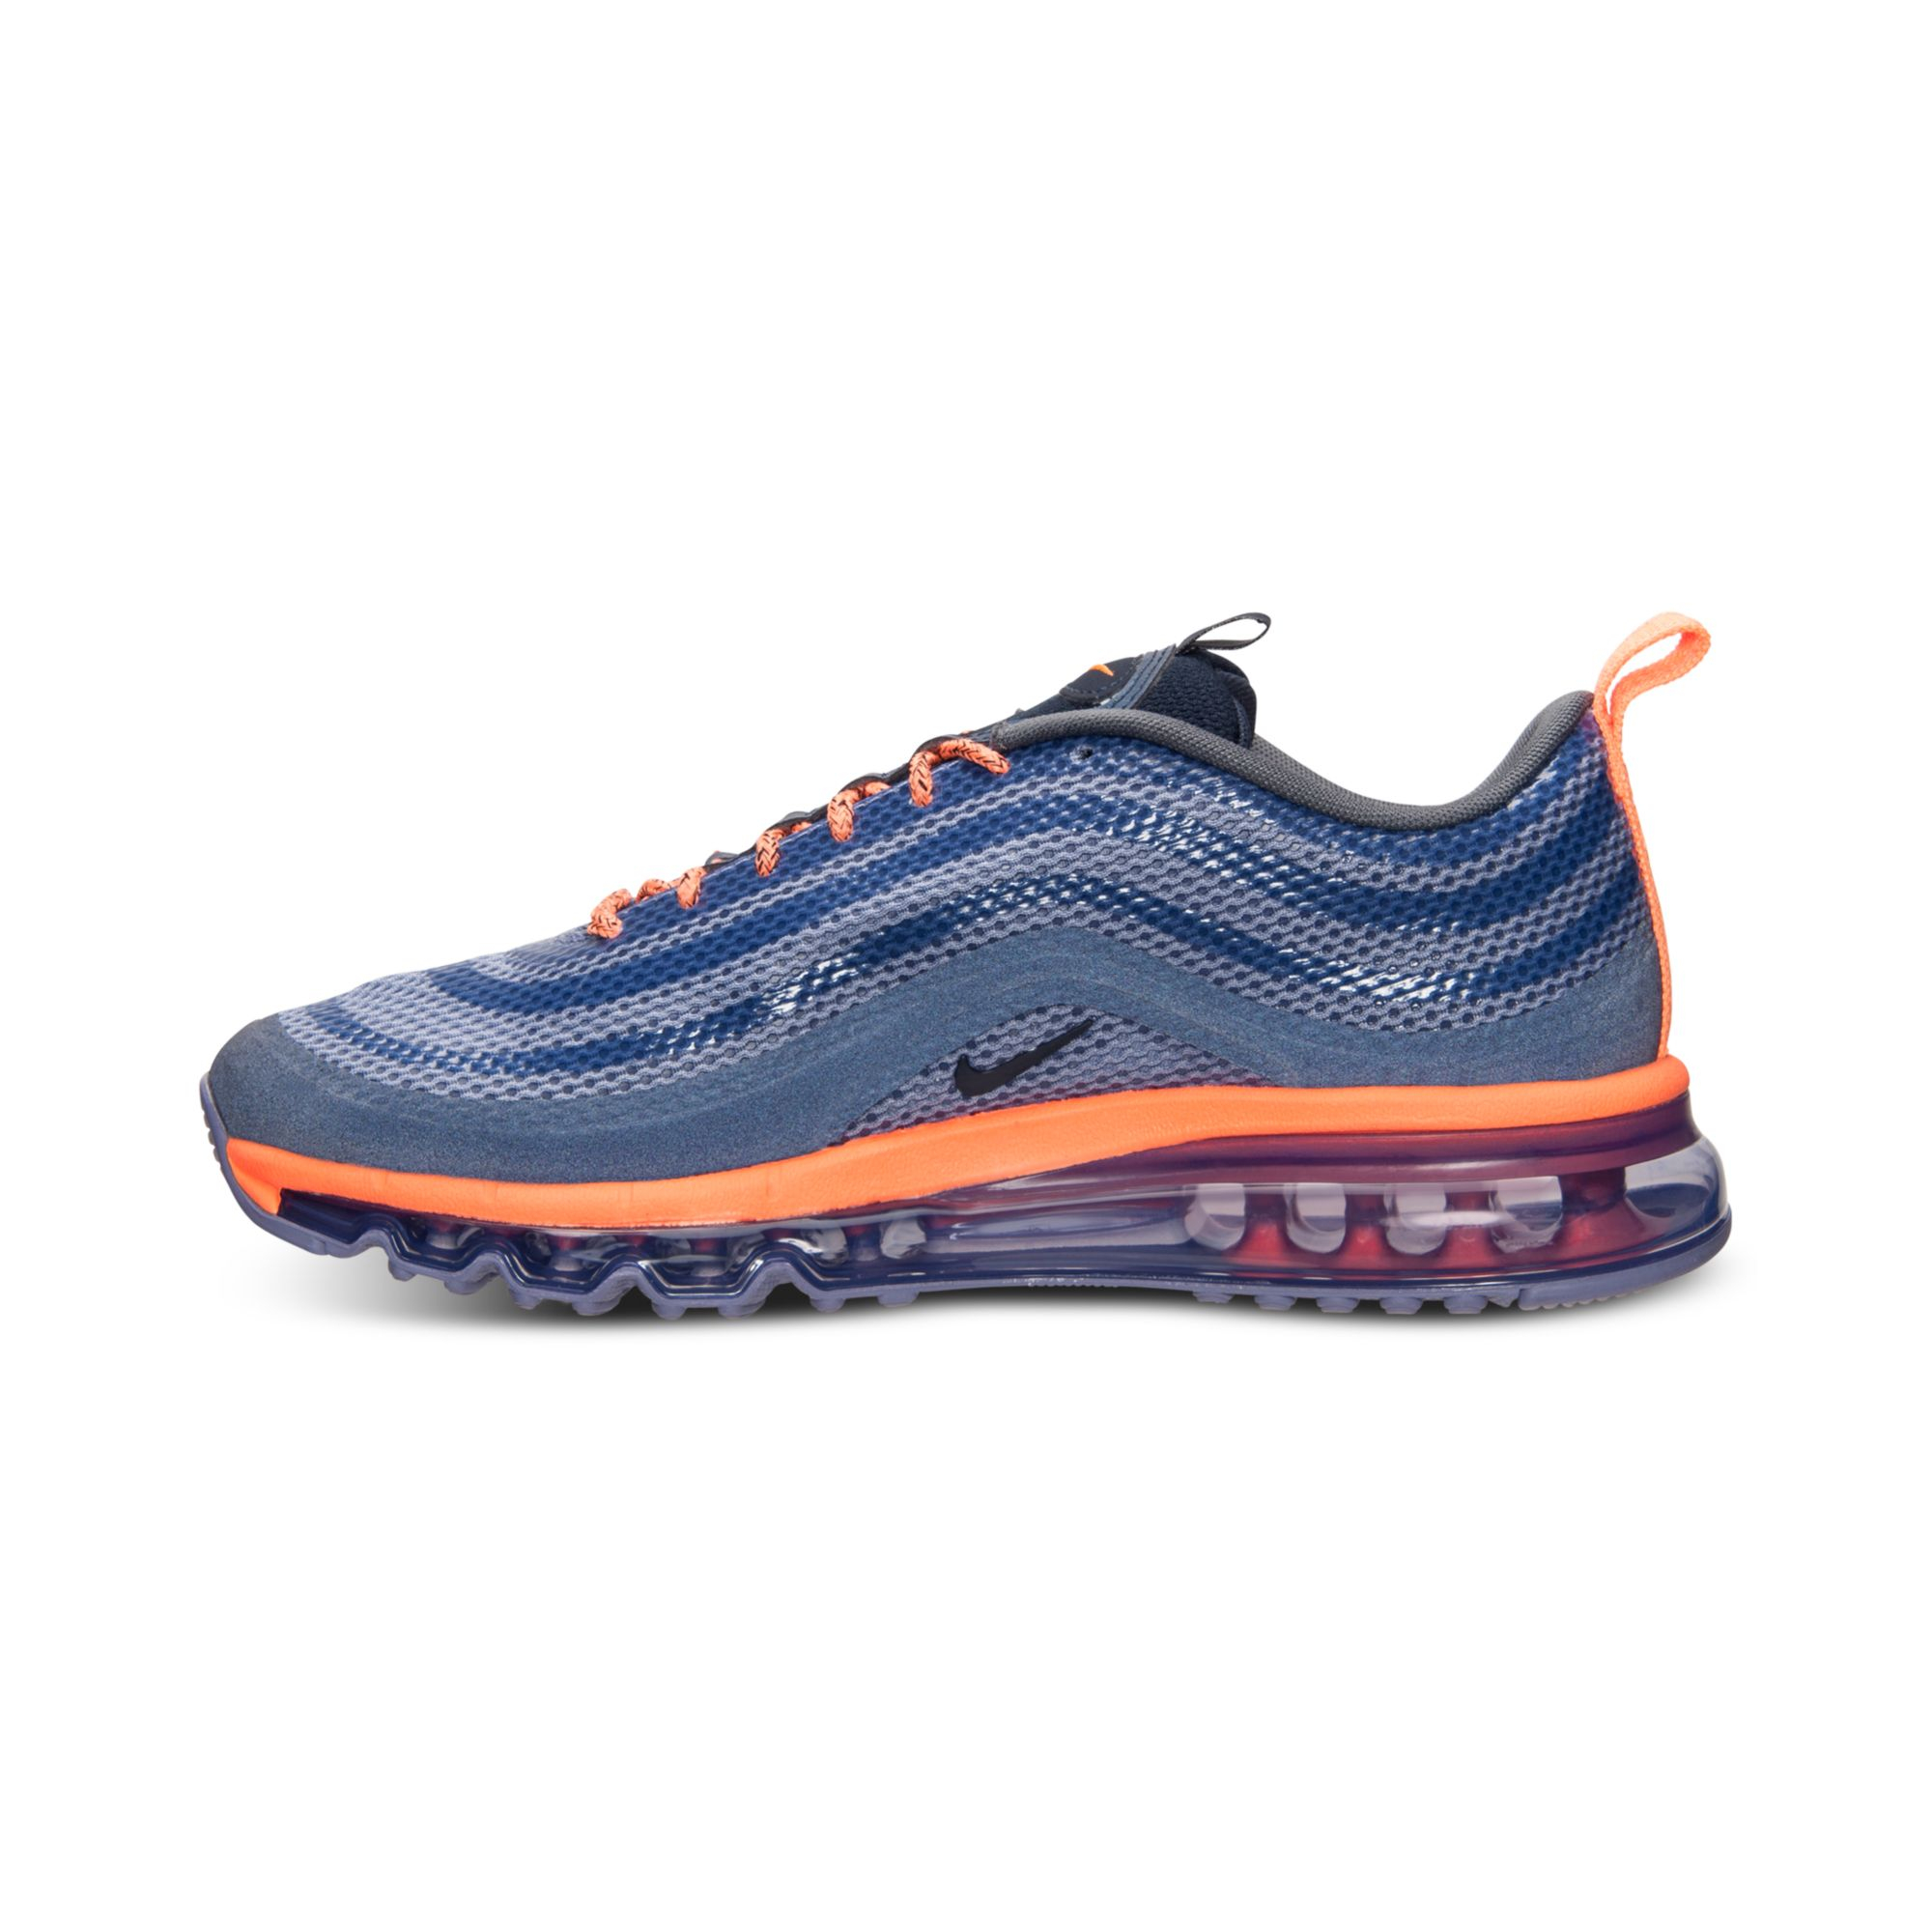 0f8b6c239a1a Gallery. Previously sold at  Macy s · Men s Puma Ignite Limiteless Men s  Nike Air Max ...